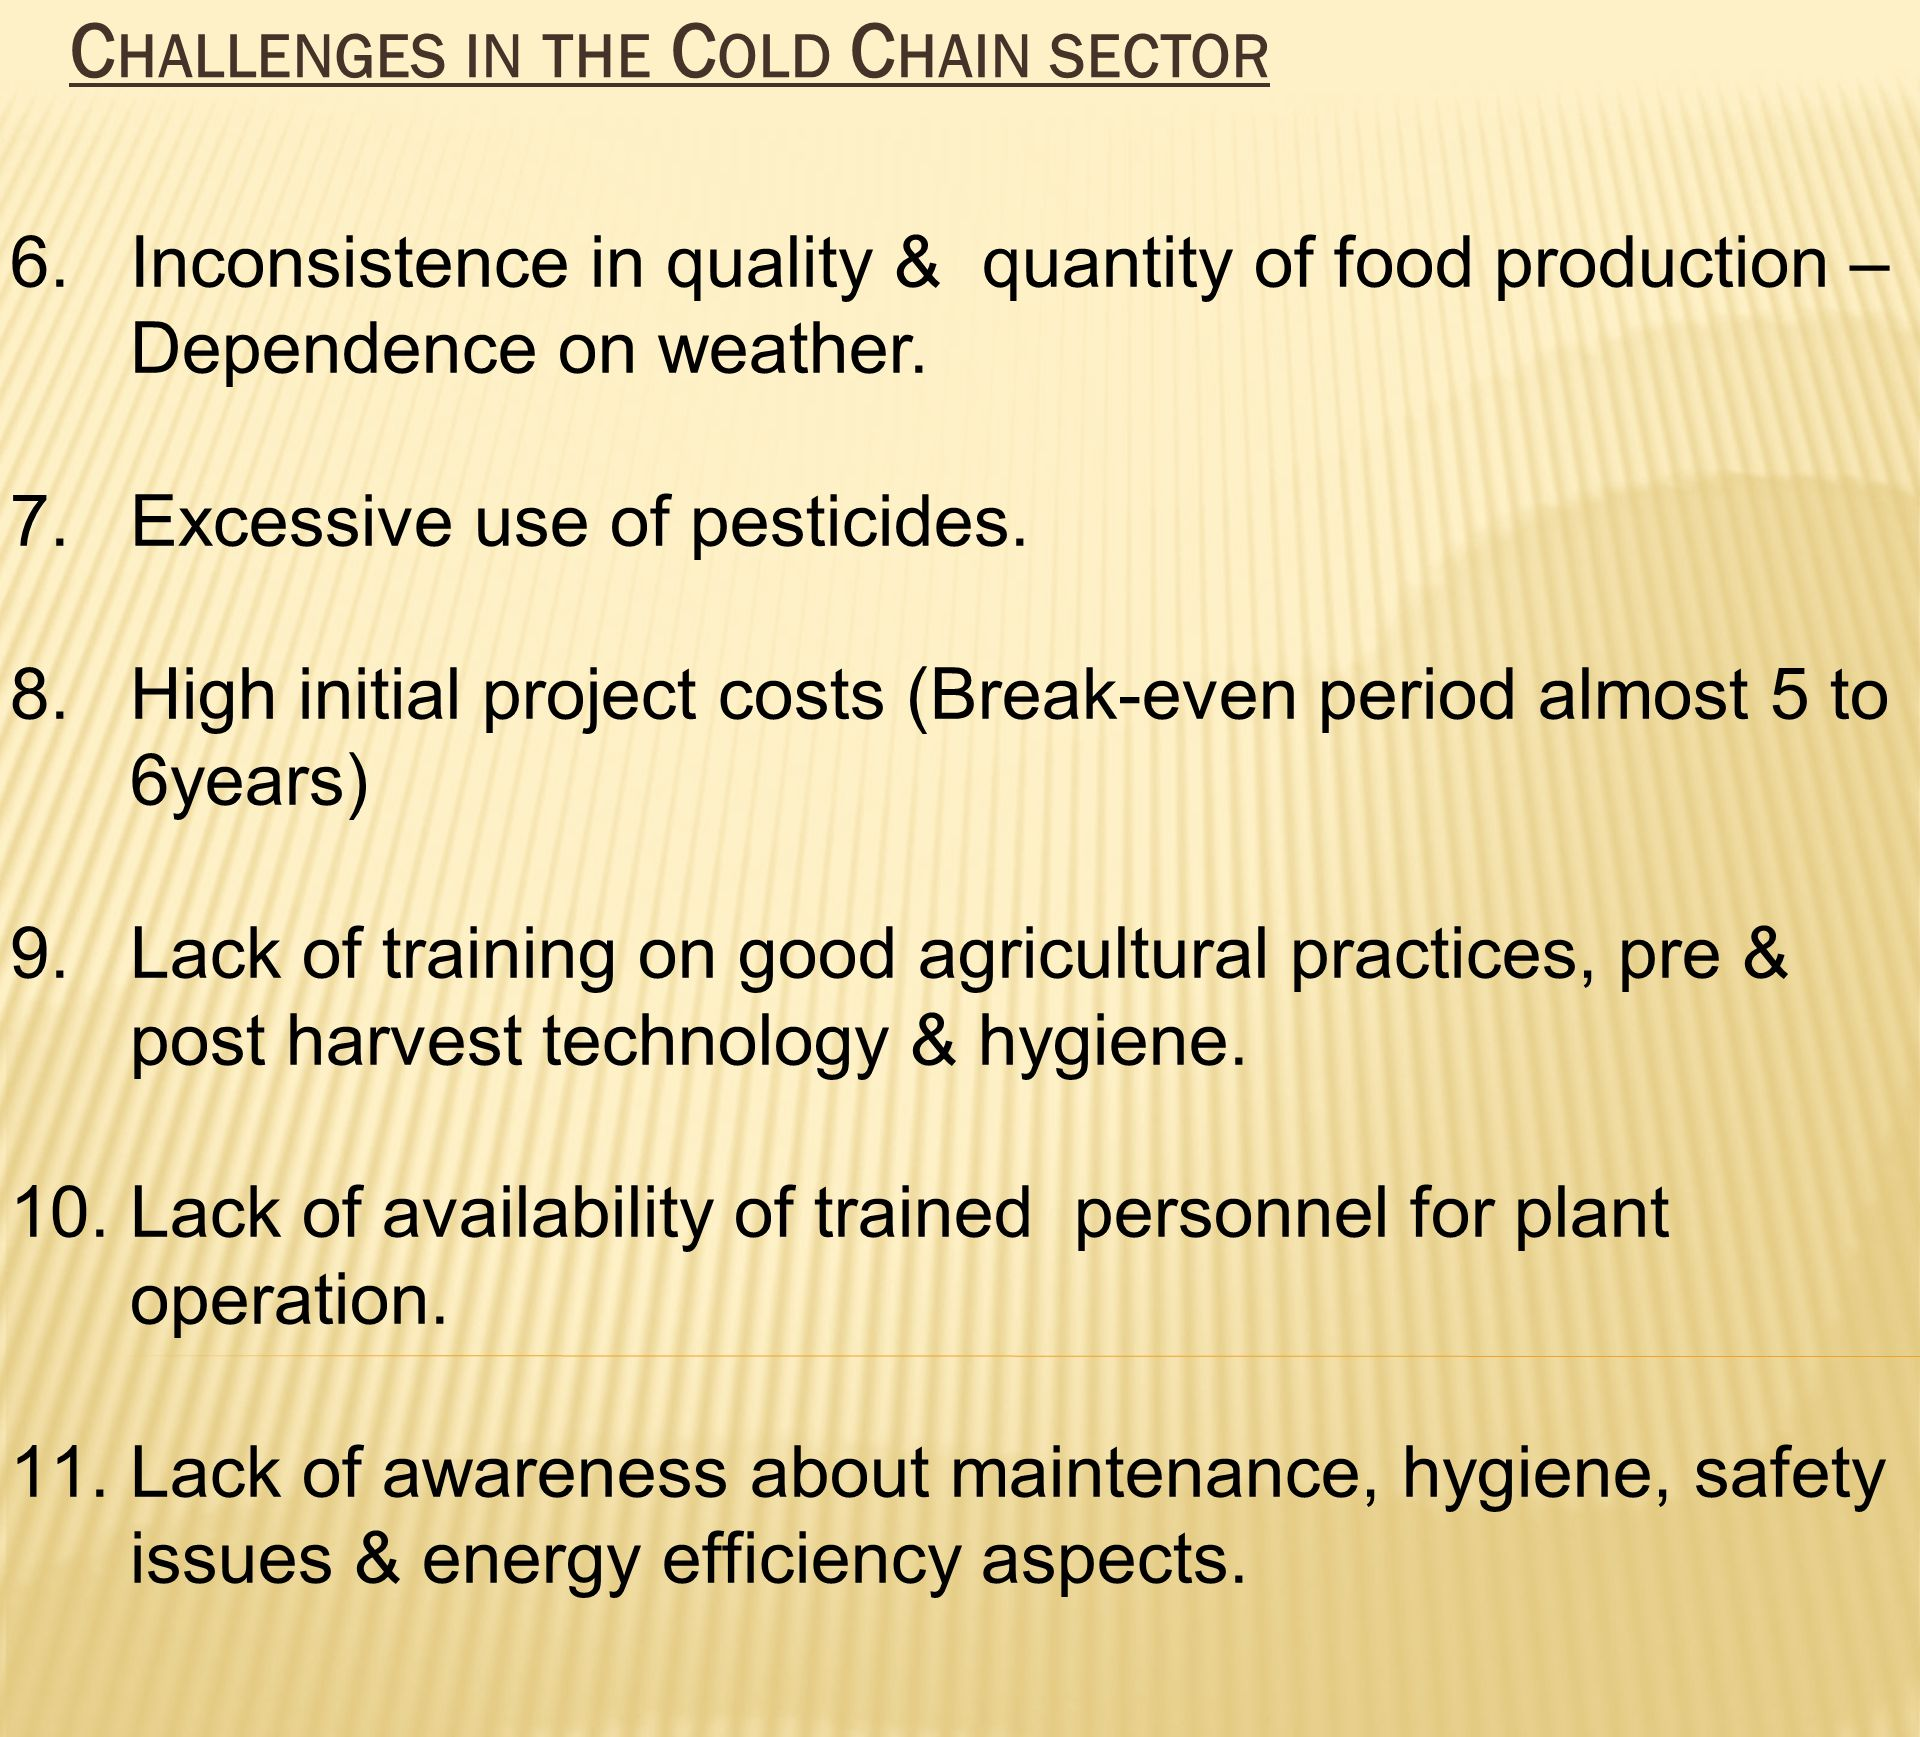 Challenges in the Cold Chain sector